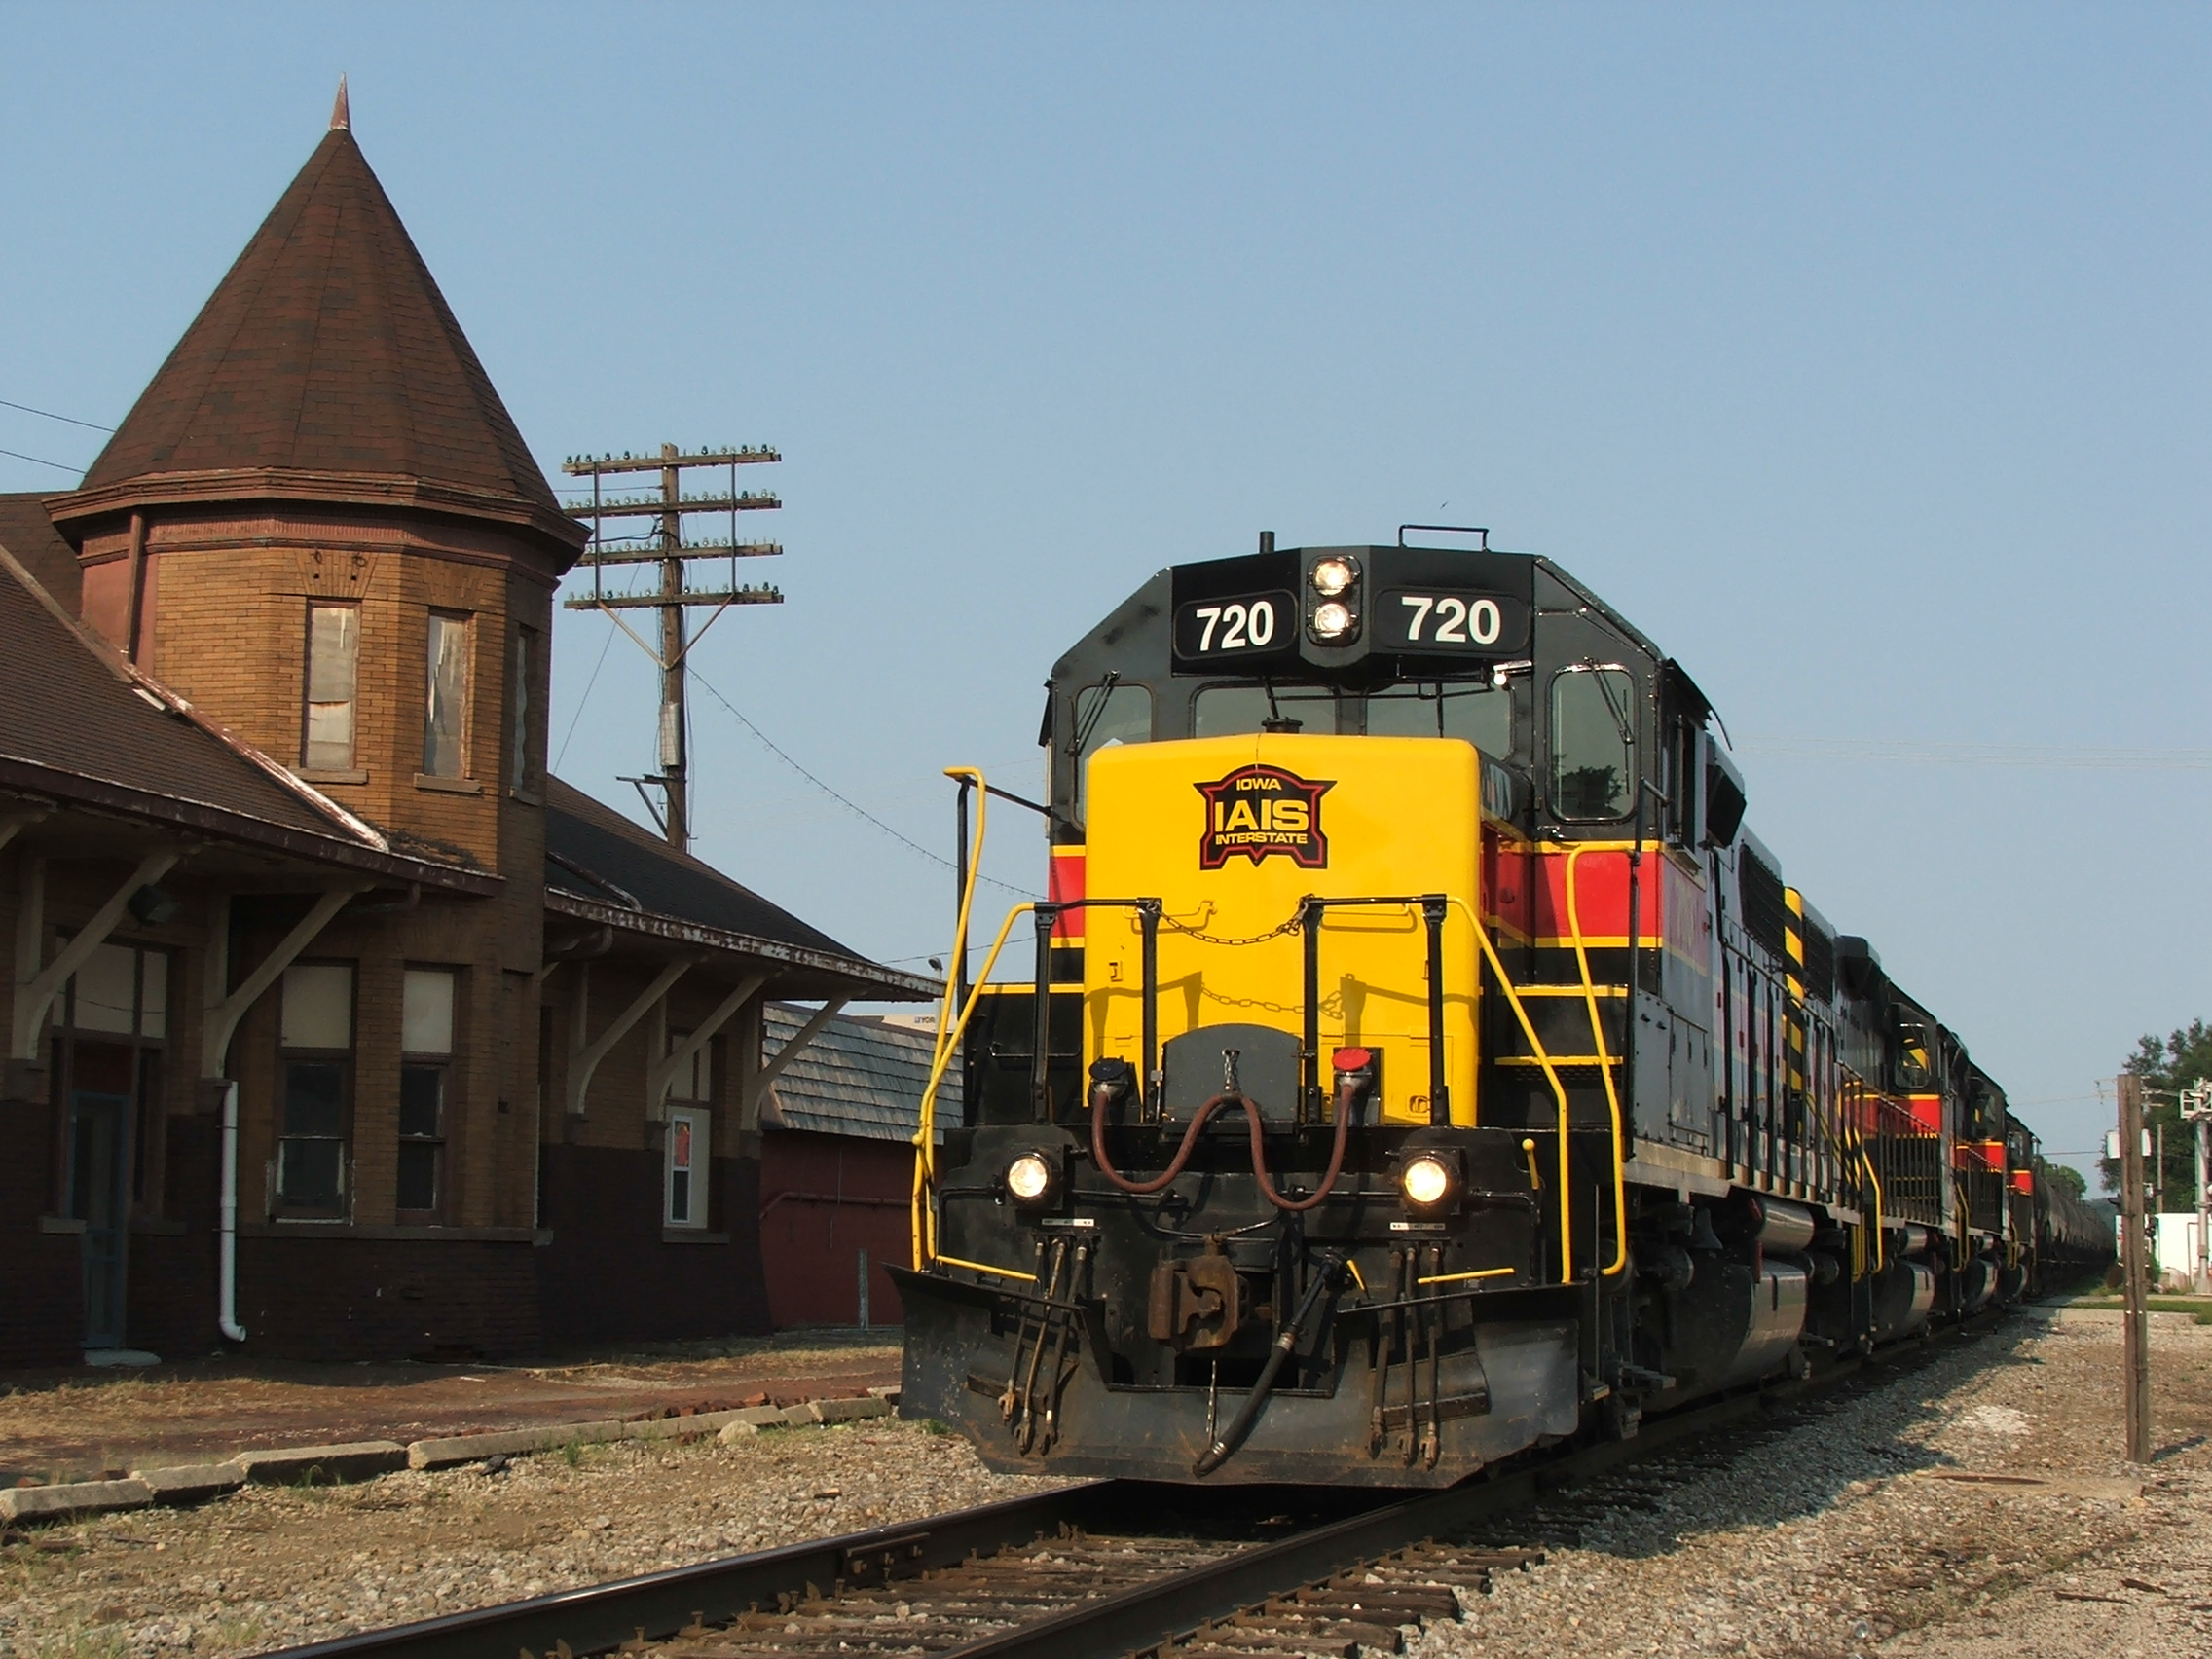 Iowa 720 leads a RINSU type train passed the old RI depot in Ottawa. The depot is now a MoW station for the CSX.